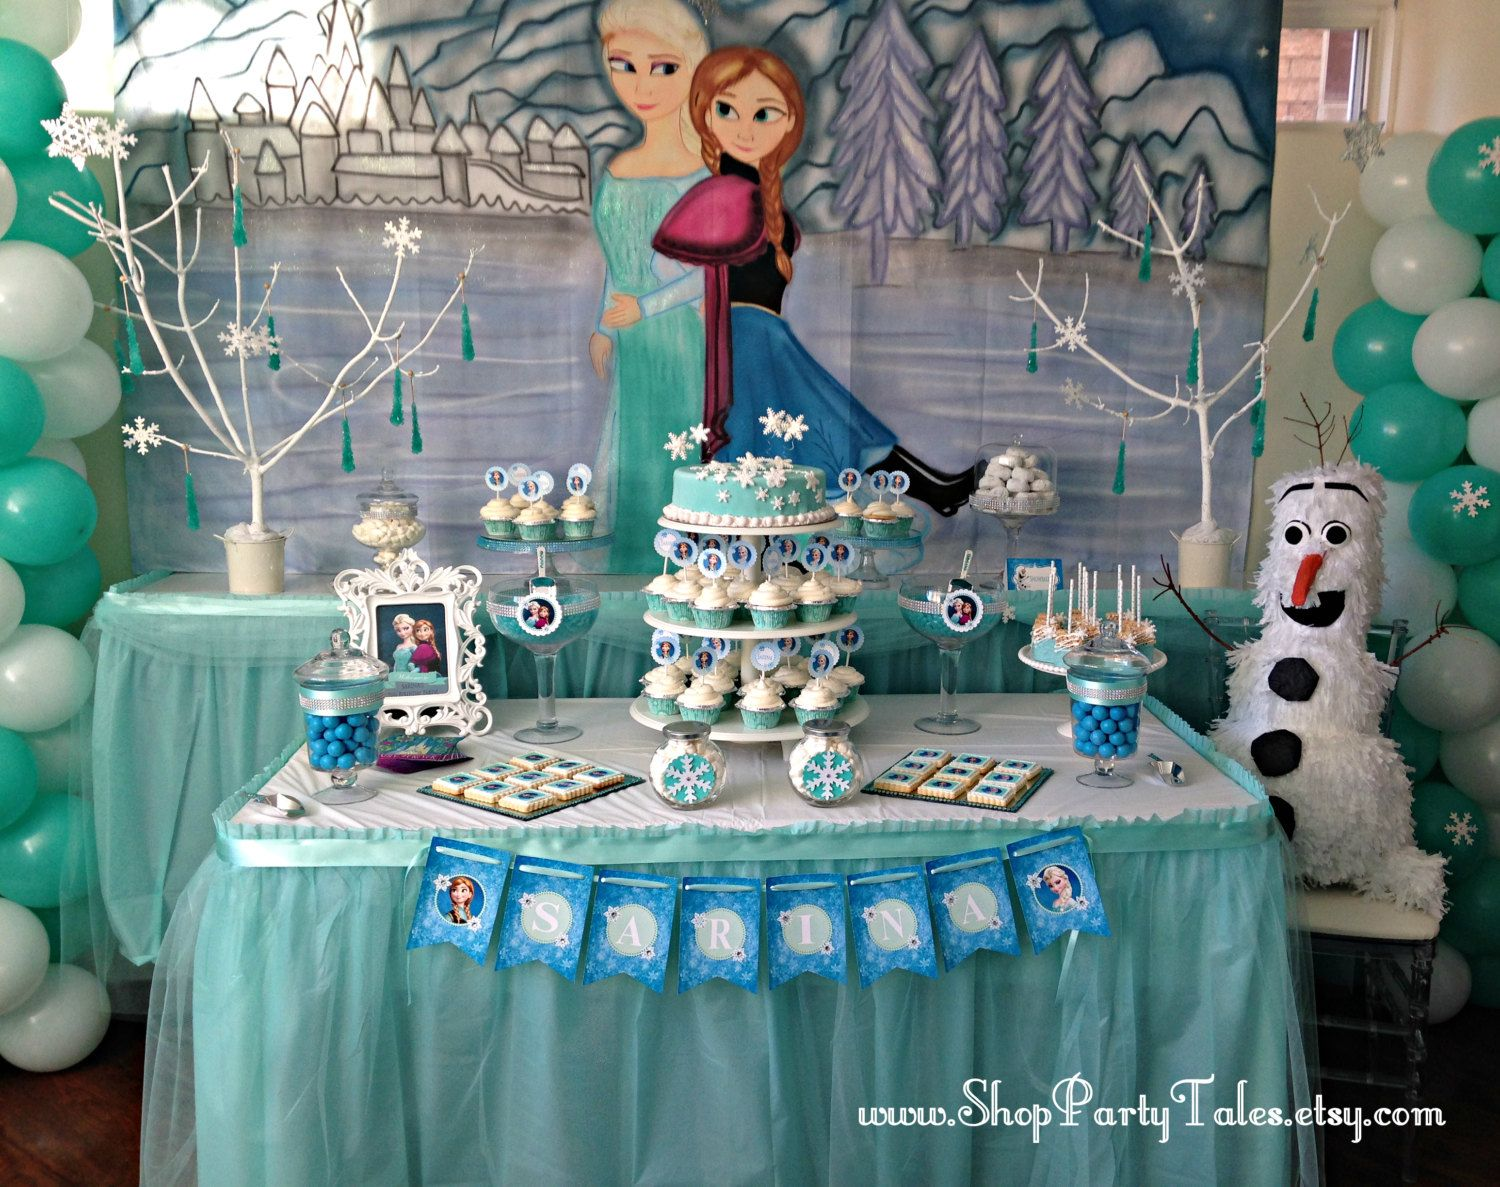 Frozen disney mural pintados a manos decoracion de por for Decoracion mesas dulces